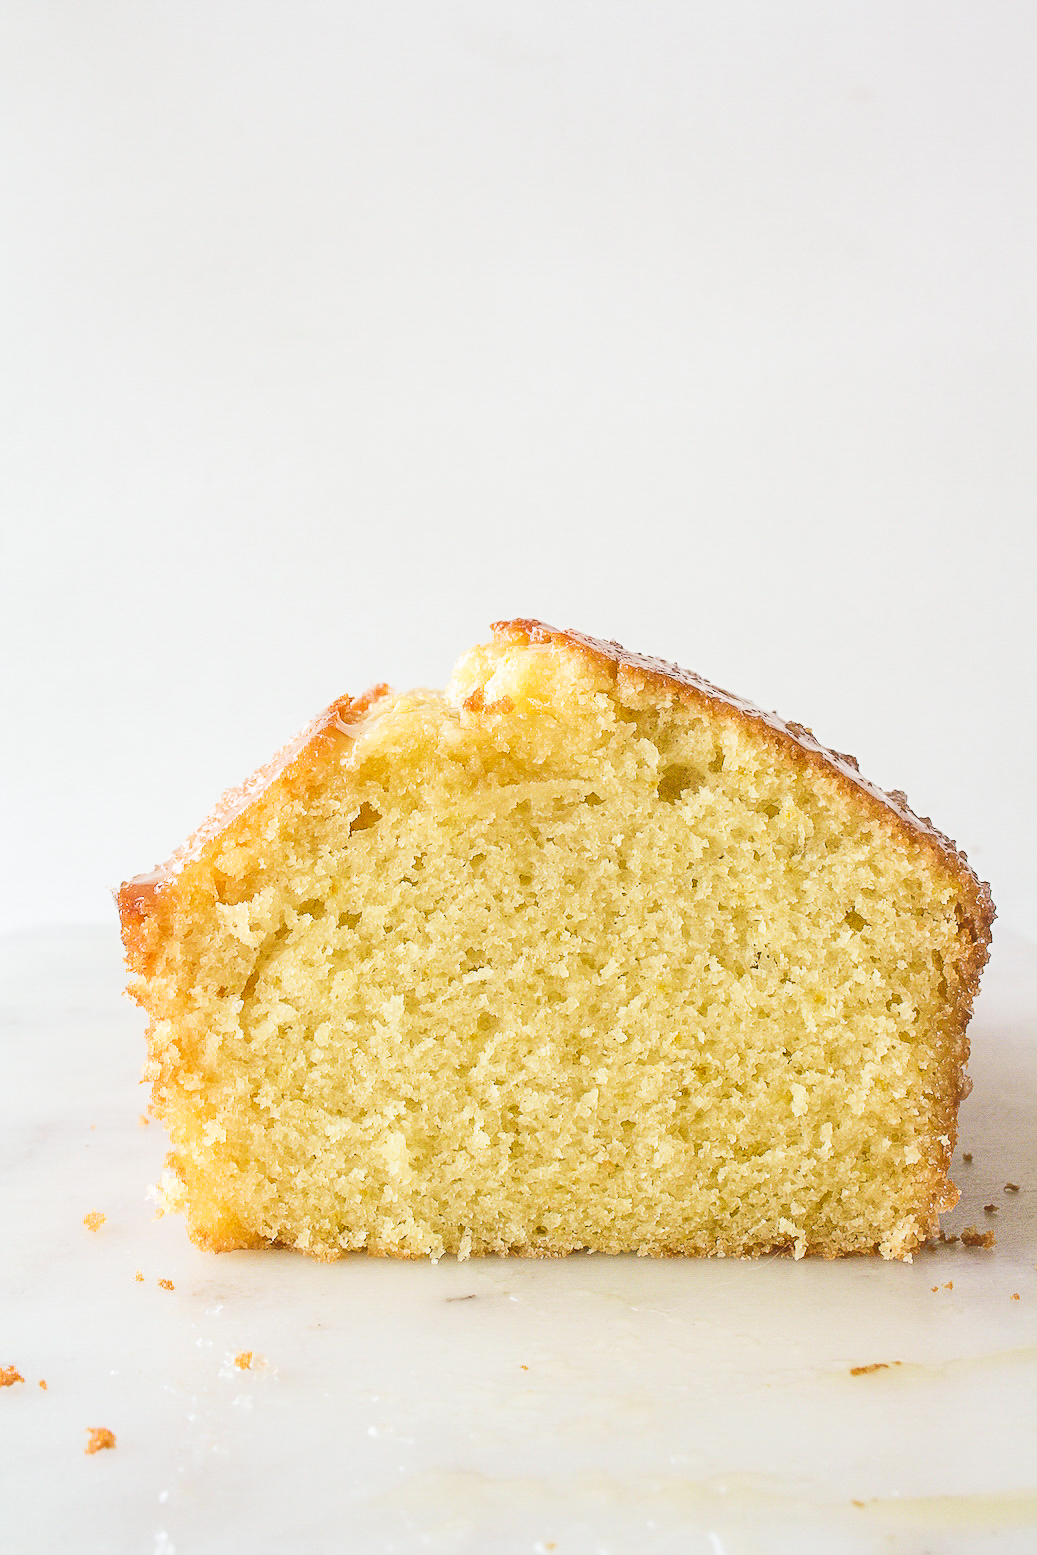 Moist, citrusy orange pound cake topped with a sticky whiskey glaze!